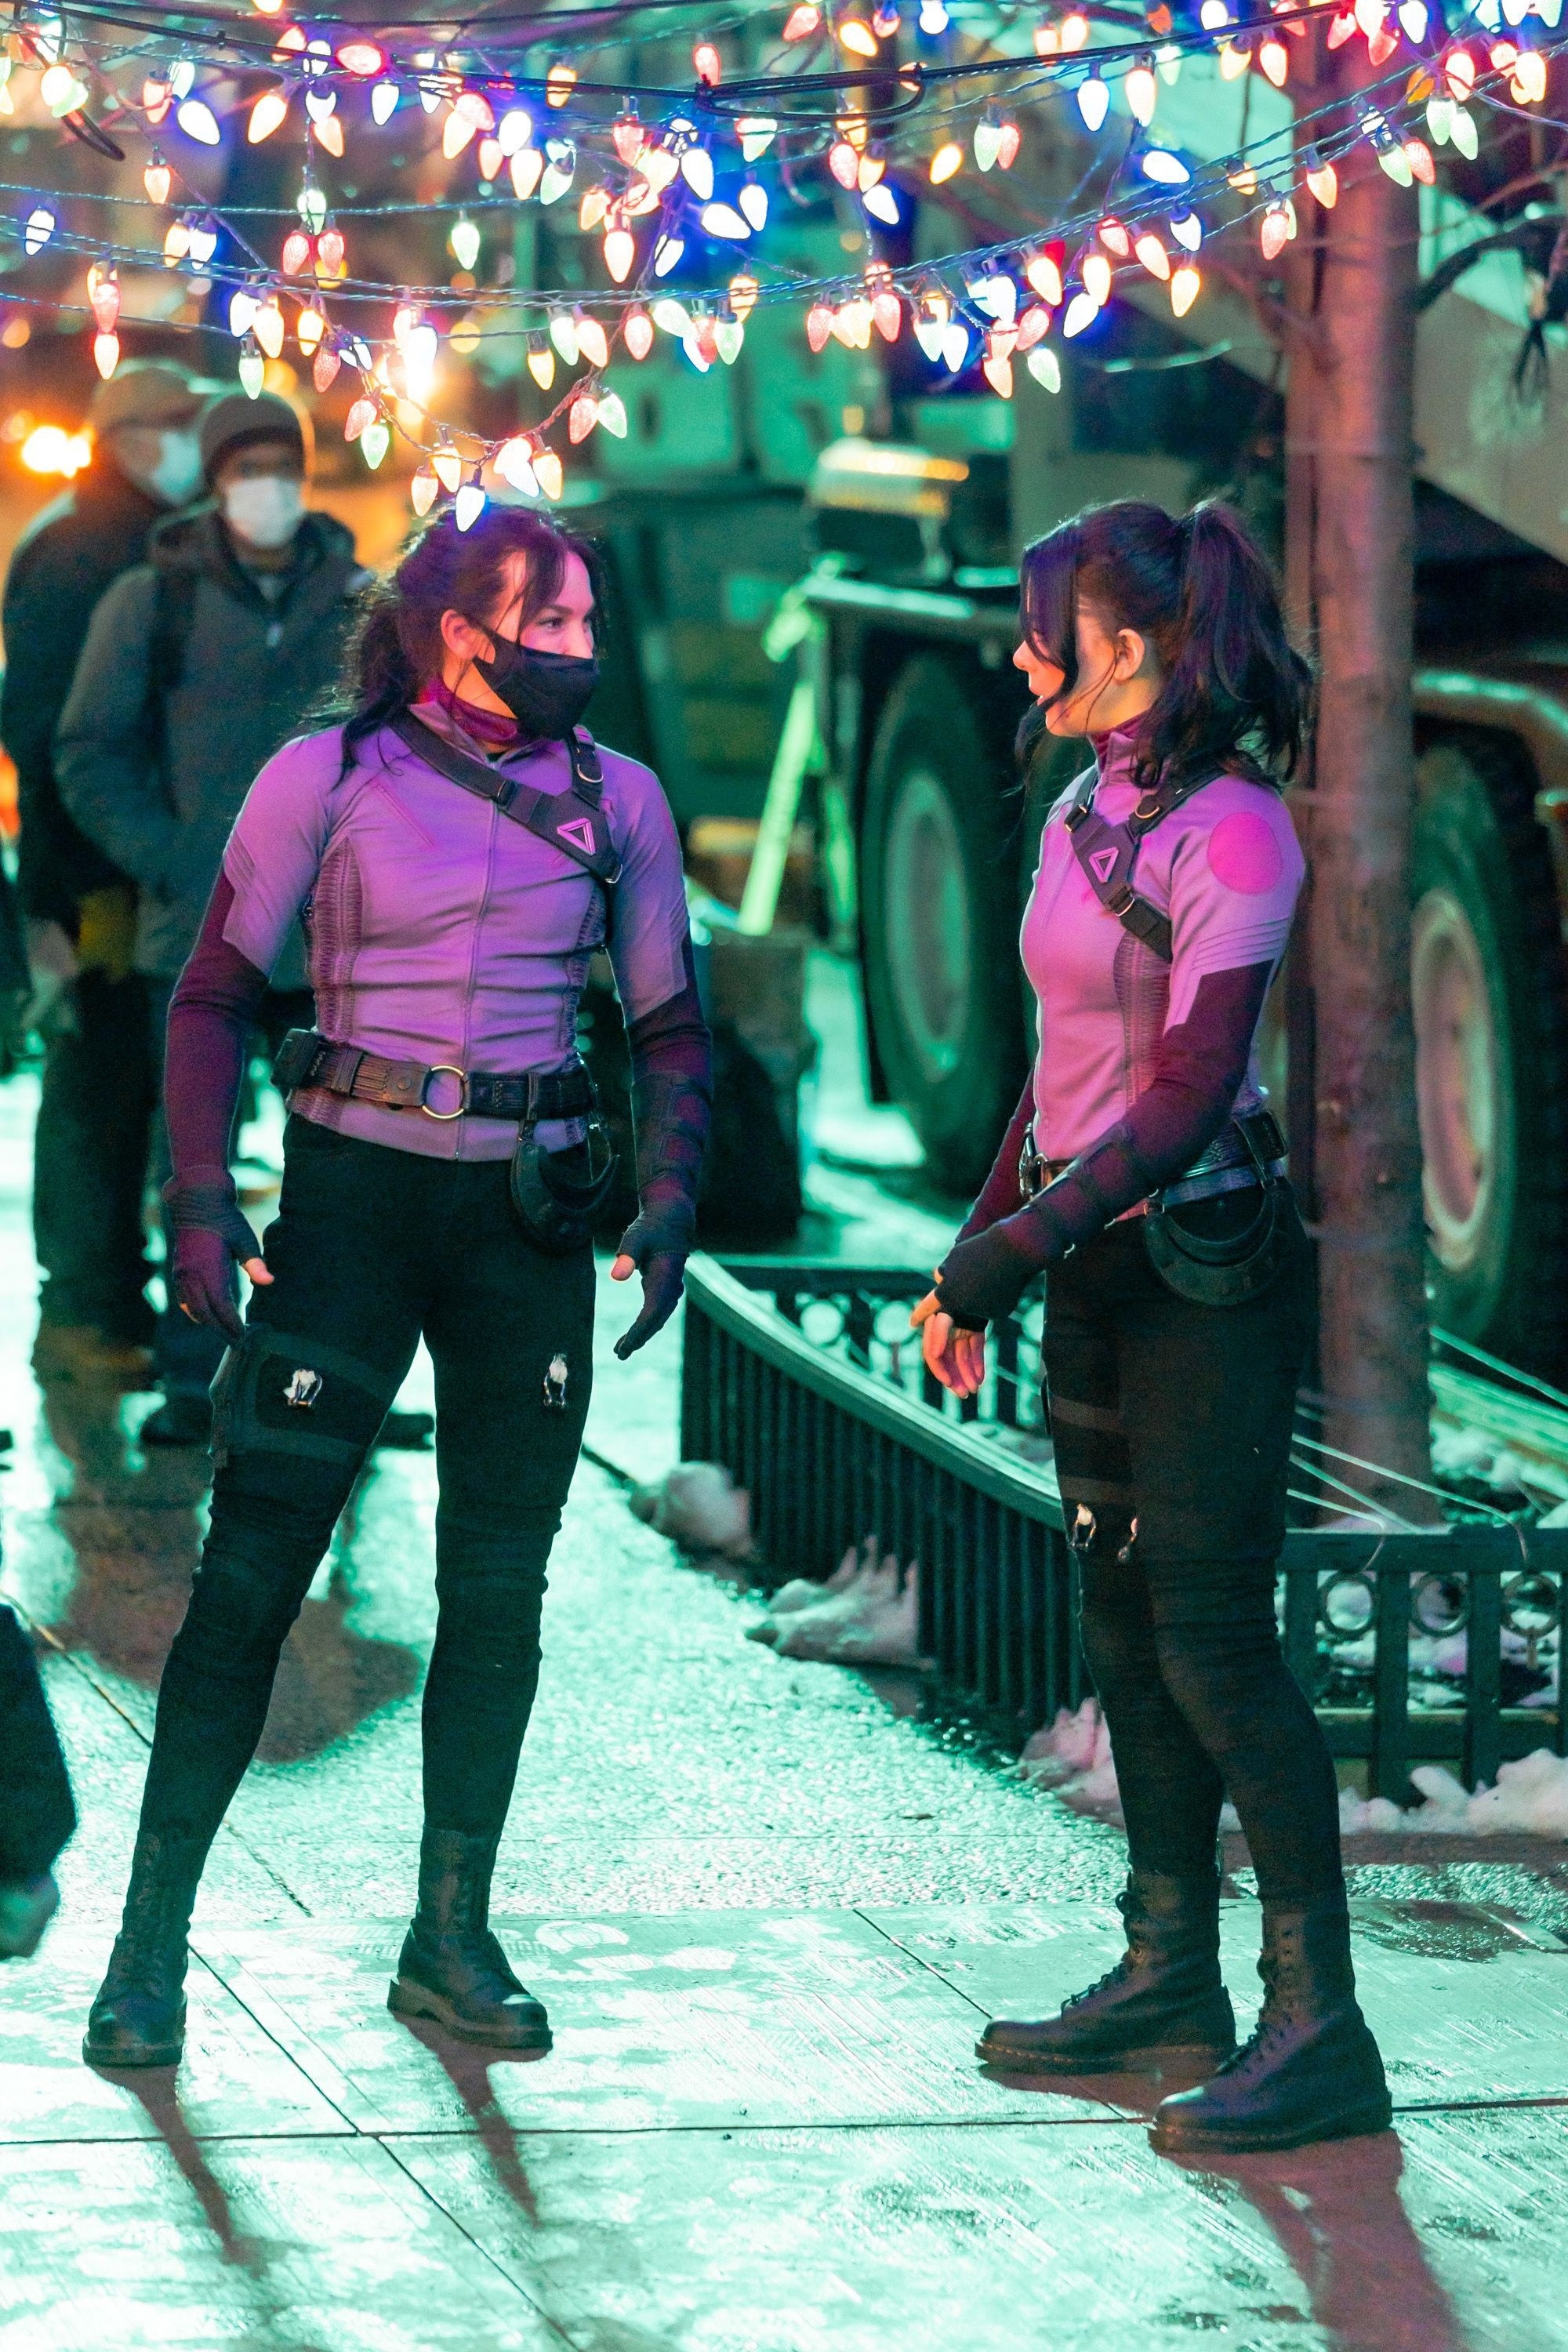 Hailee Steinfeld and her stunt double filming at night outdoors